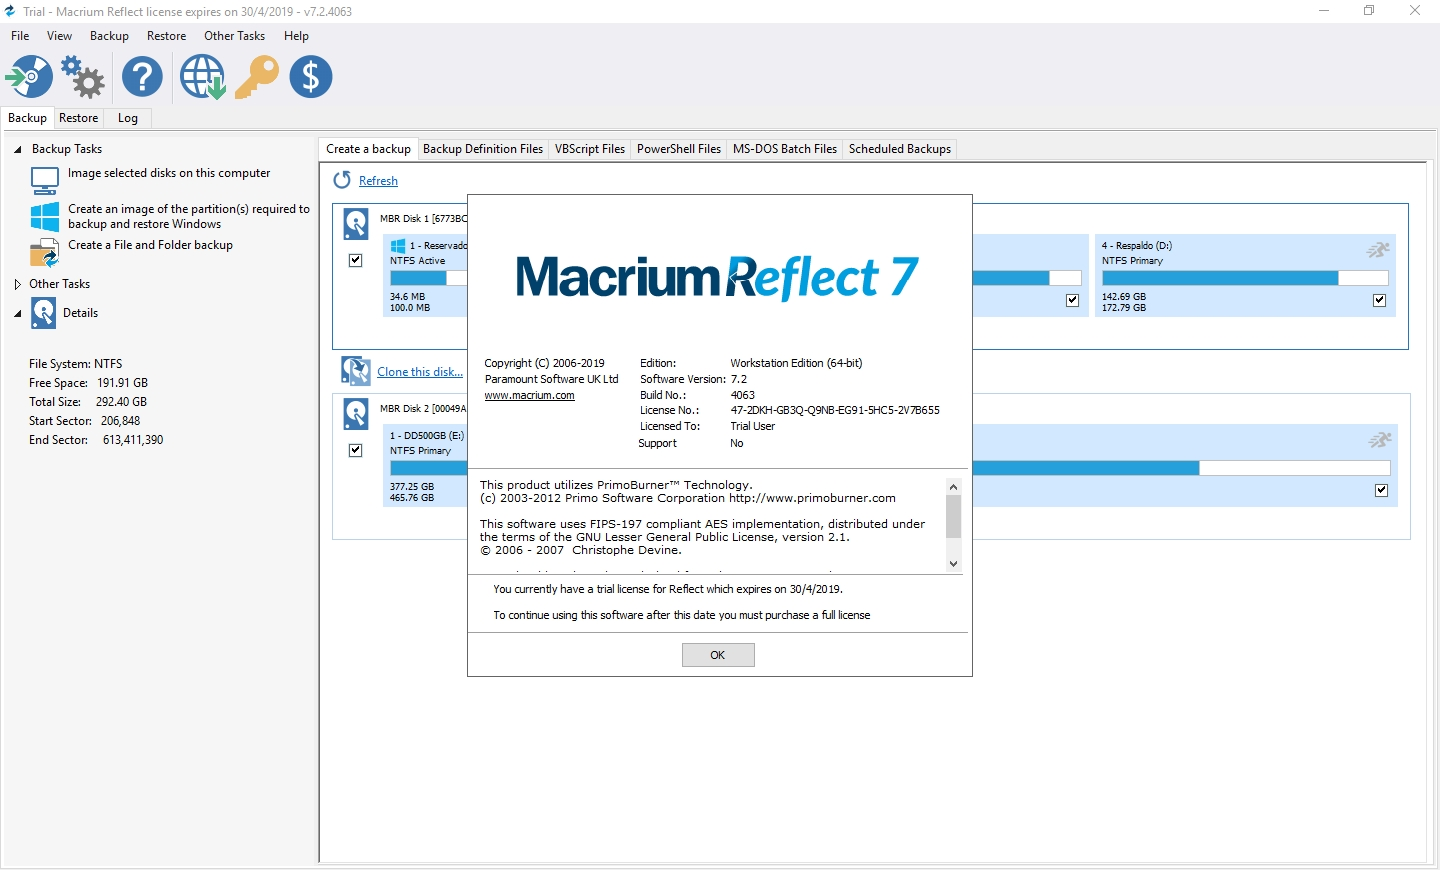 Macrium Reflect: Interface Gráfica - 42